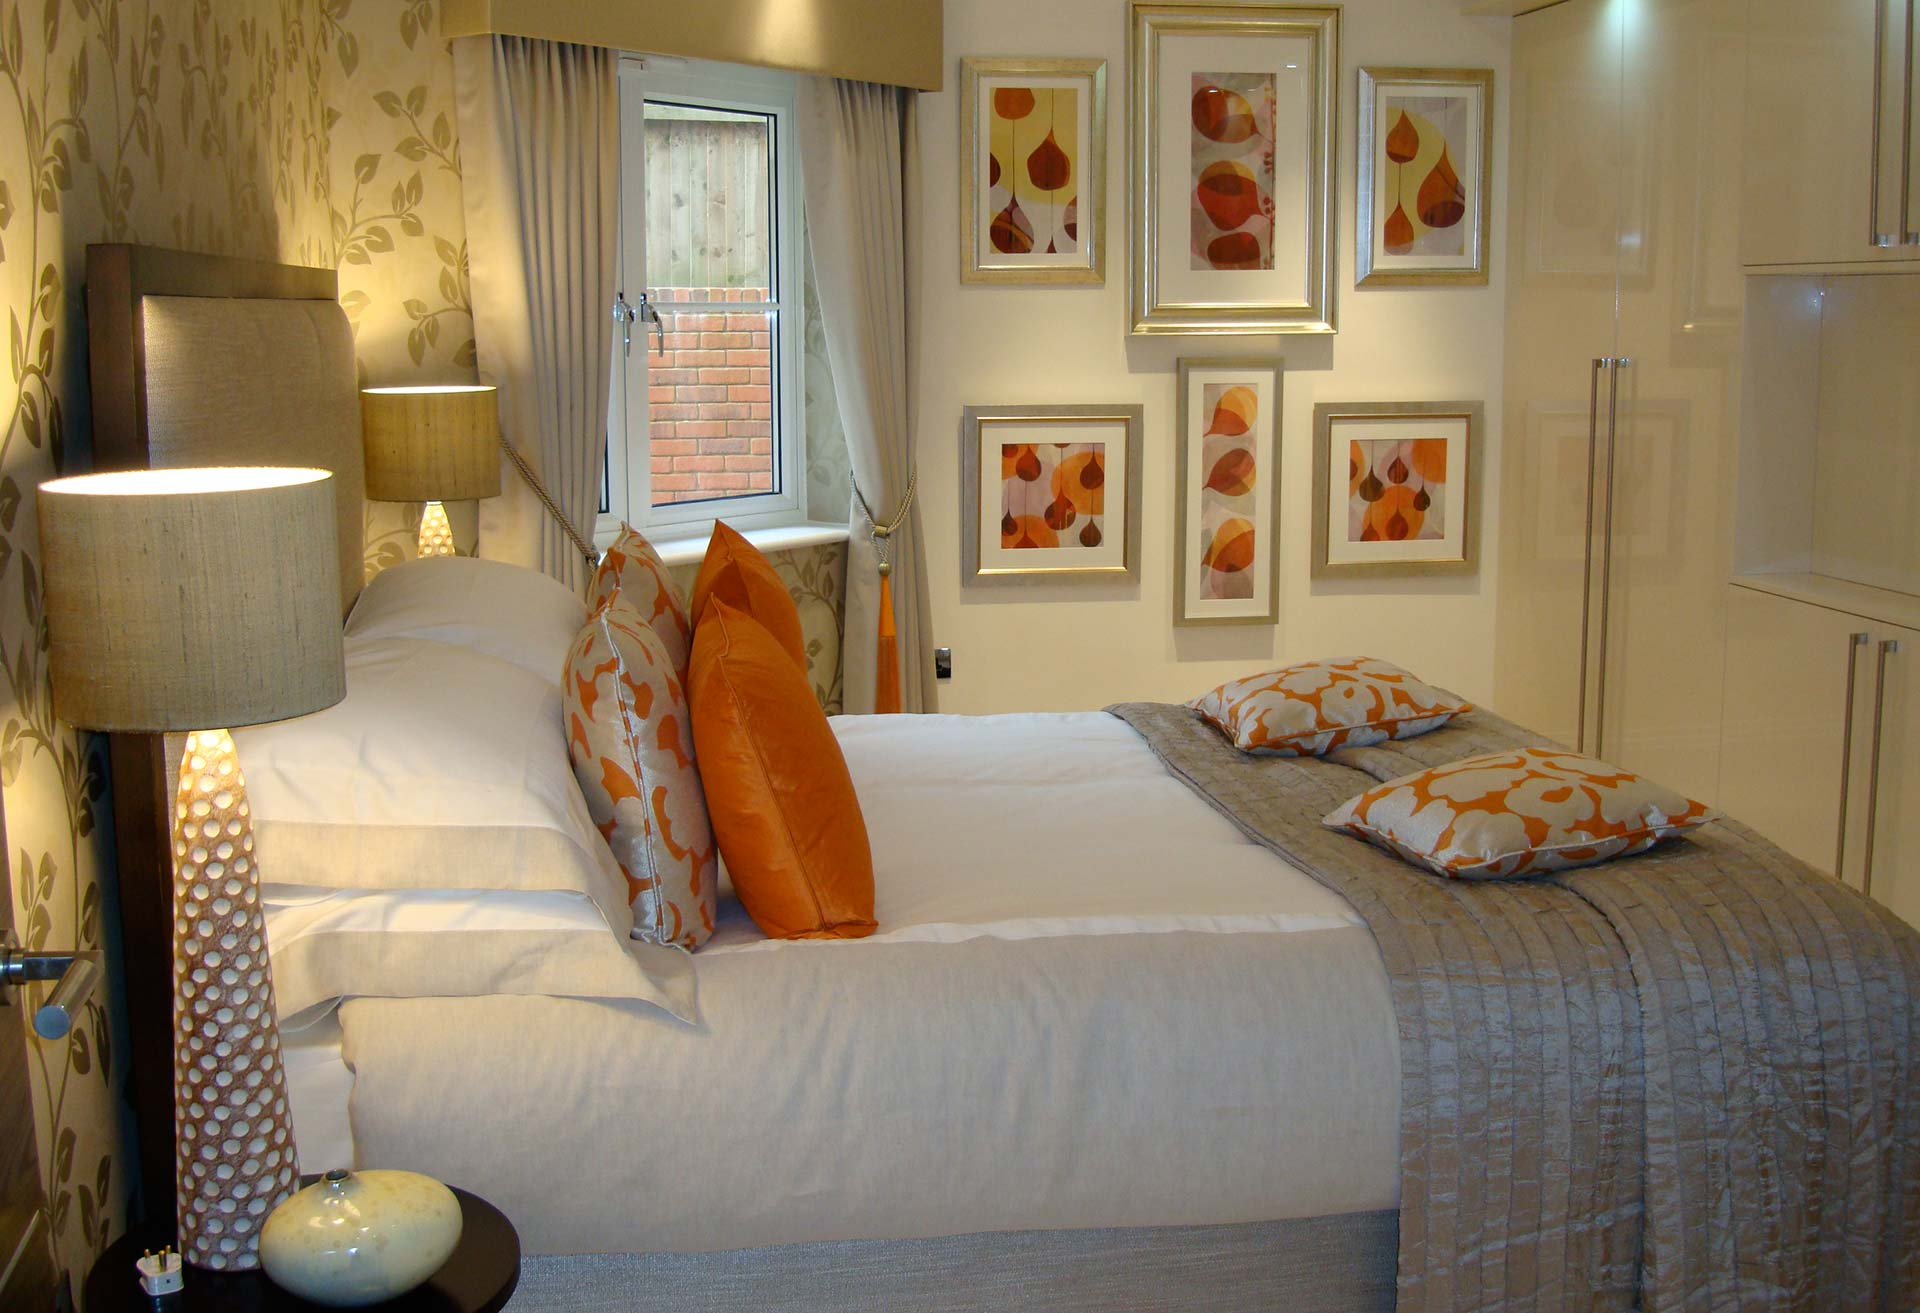 Luxury apartments north london cox co welcome to for Interior designers north london